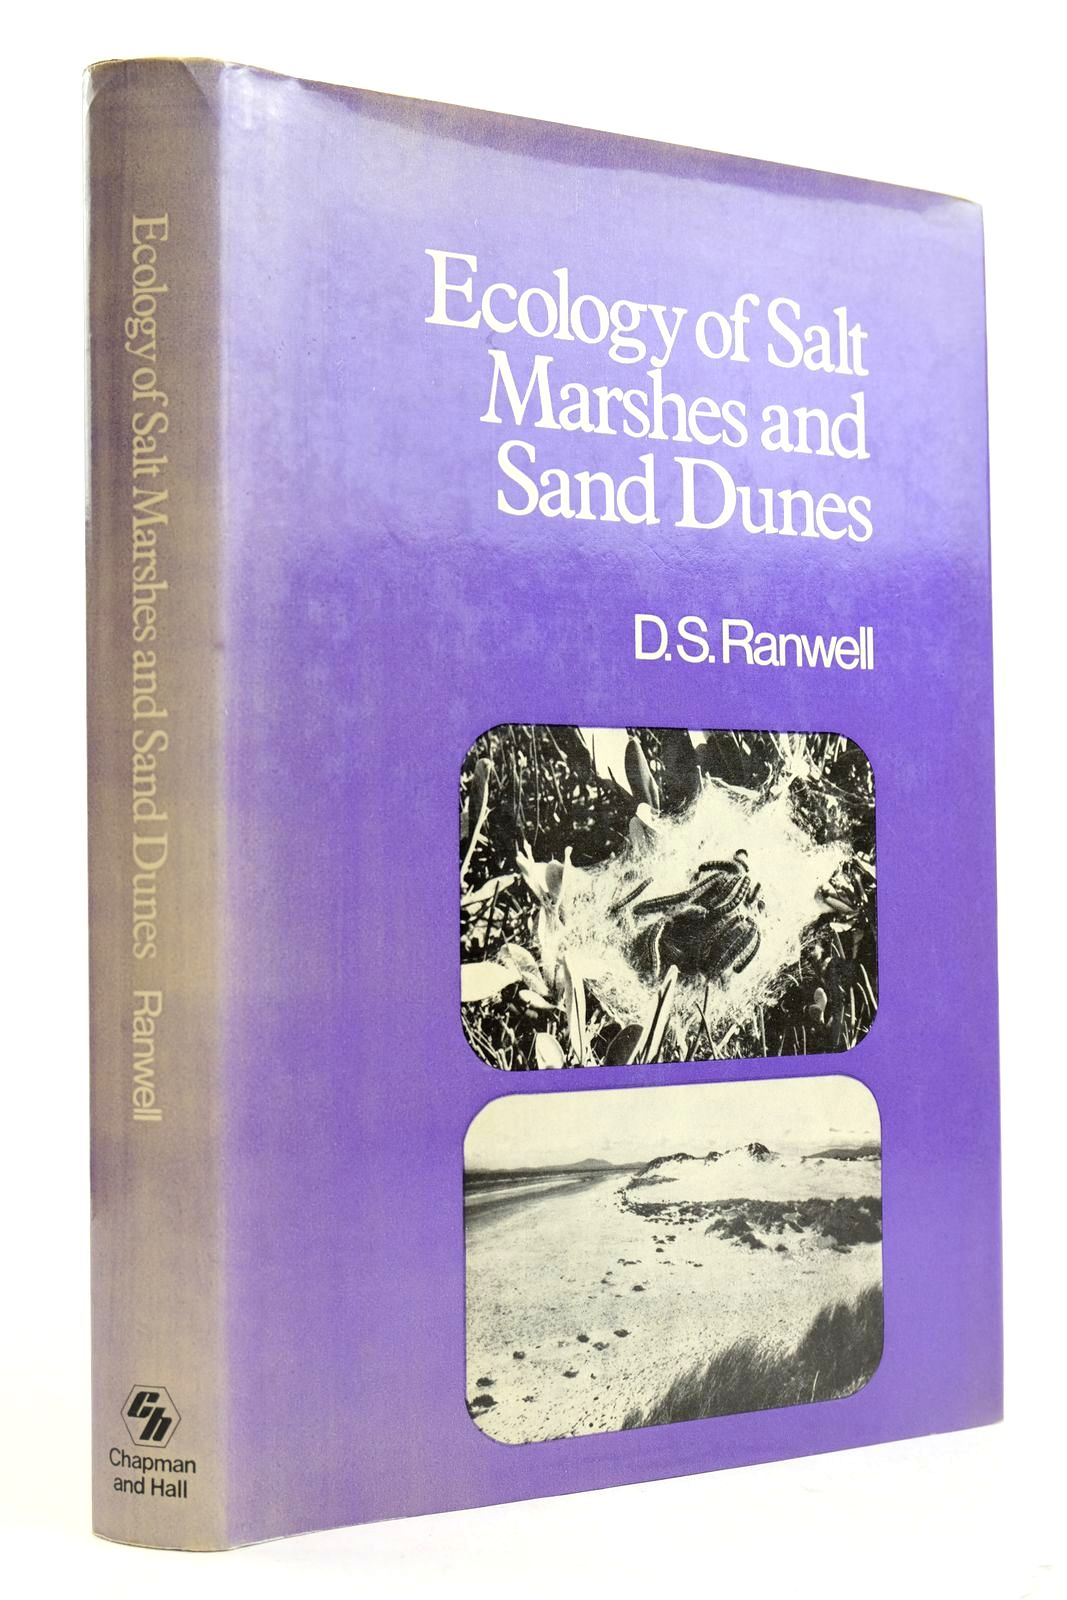 Photo of ECOLOGY OF SALT MARSHES AND SAND DUNES written by Ranwell, D.S published by Chapman & Hall (STOCK CODE: 2132736)  for sale by Stella & Rose's Books